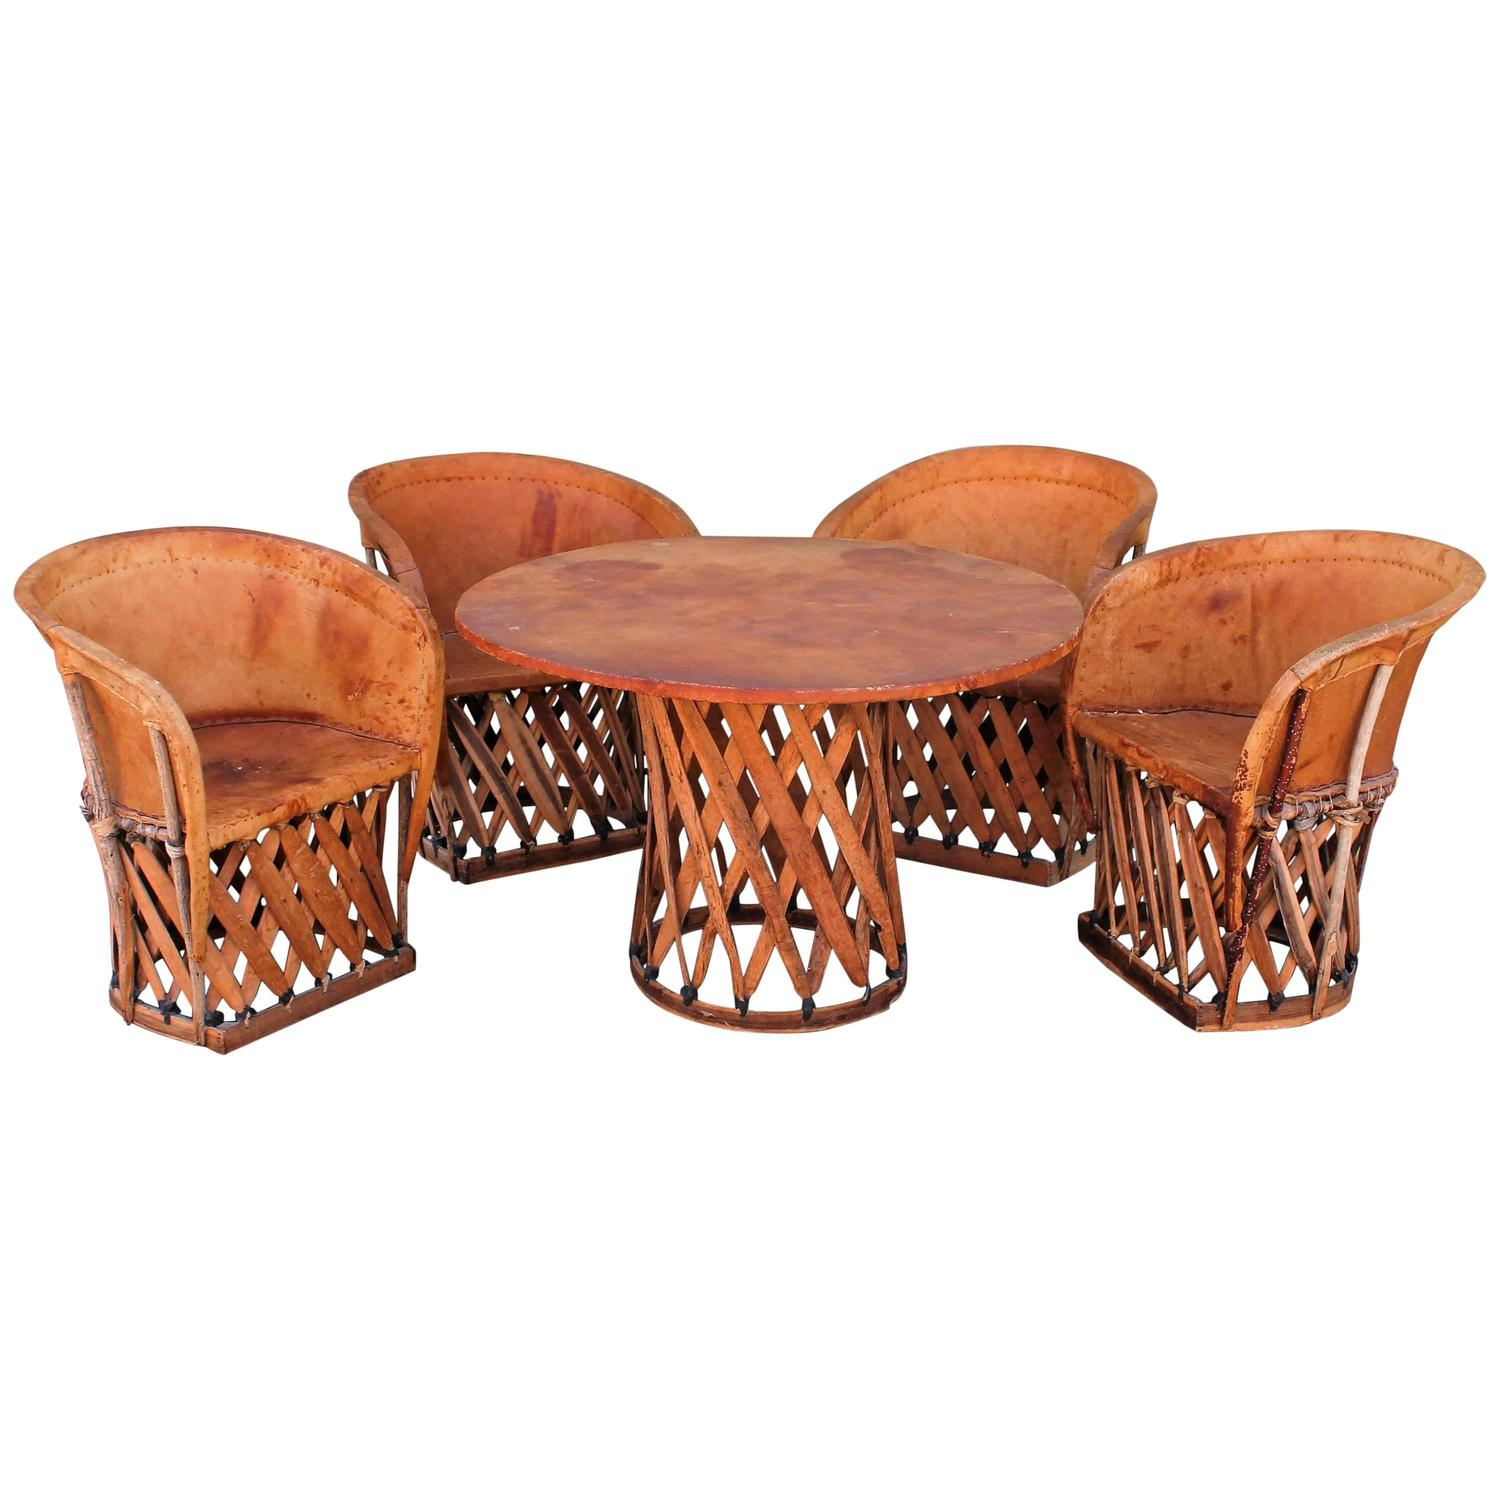 1930s Equipale Table And Chairs From Guadalajara, Mexico At 1stdibs